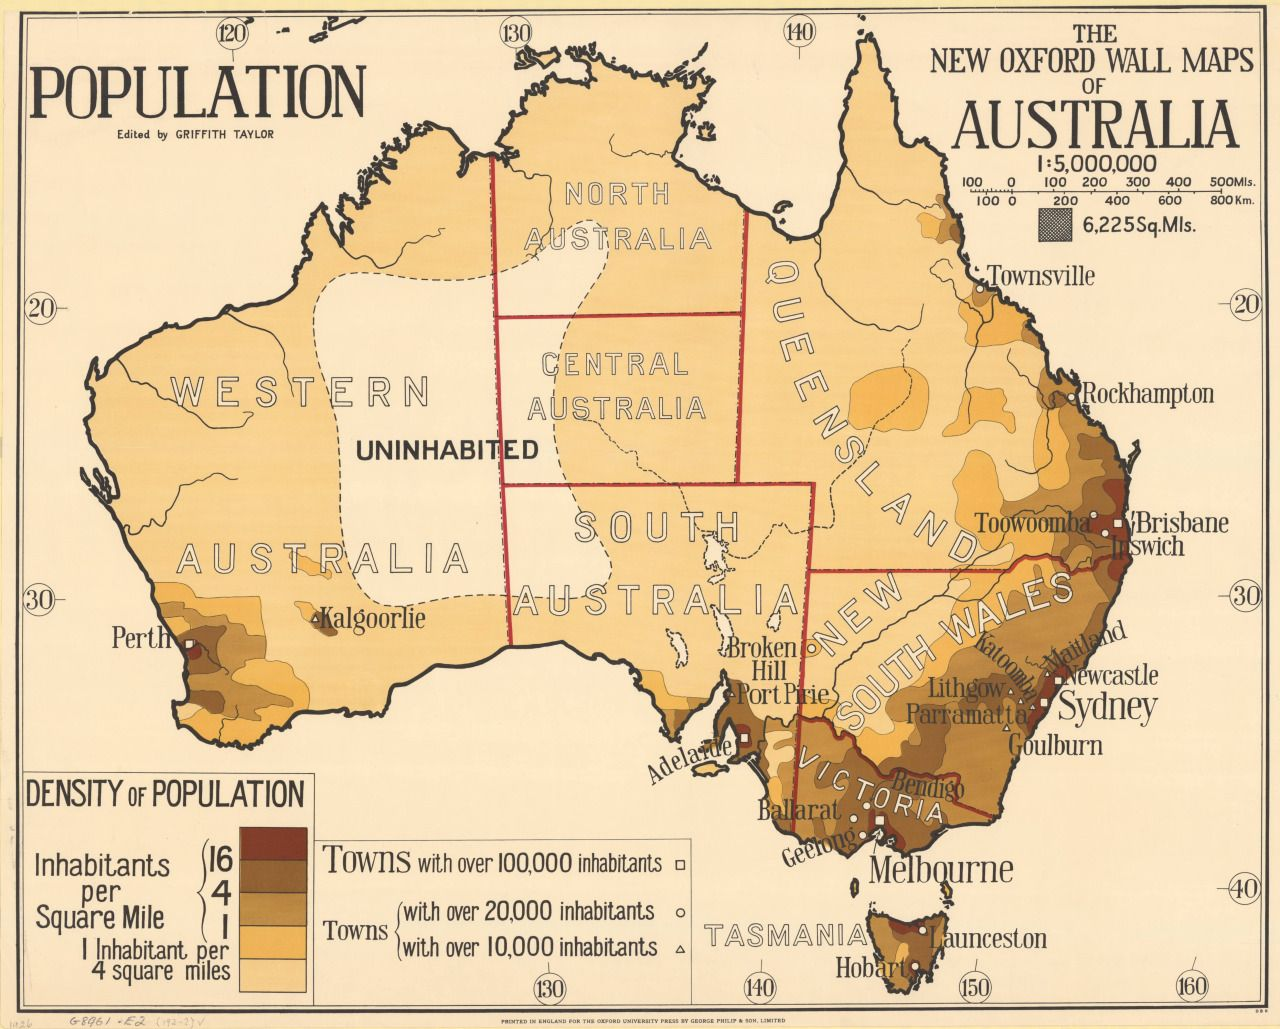 Population density map of australia 1920s maps on the web population density map of australia 1920s maps on the web gumiabroncs Image collections